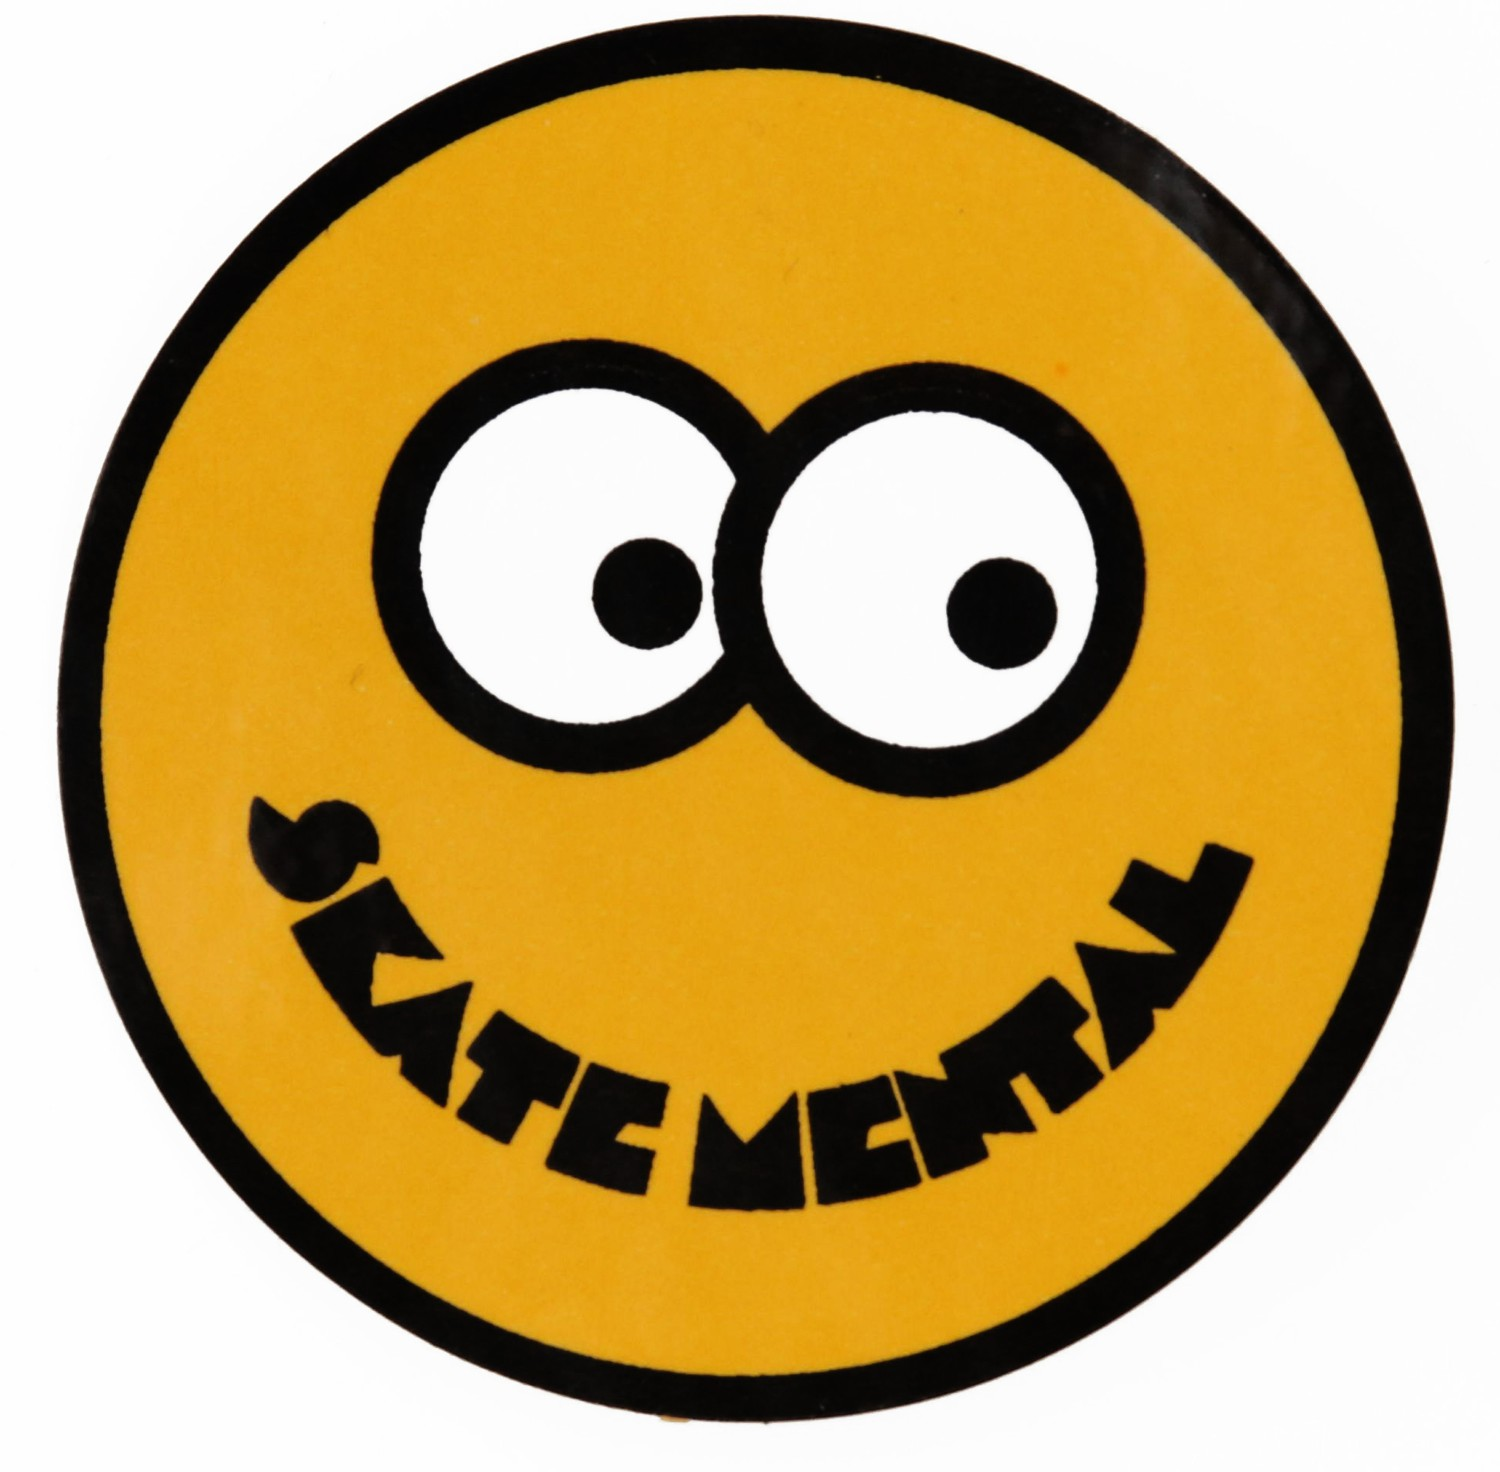 "Skate Mental Smiley Face 2.5"" Sticker - yellow - Skate Shop ..."